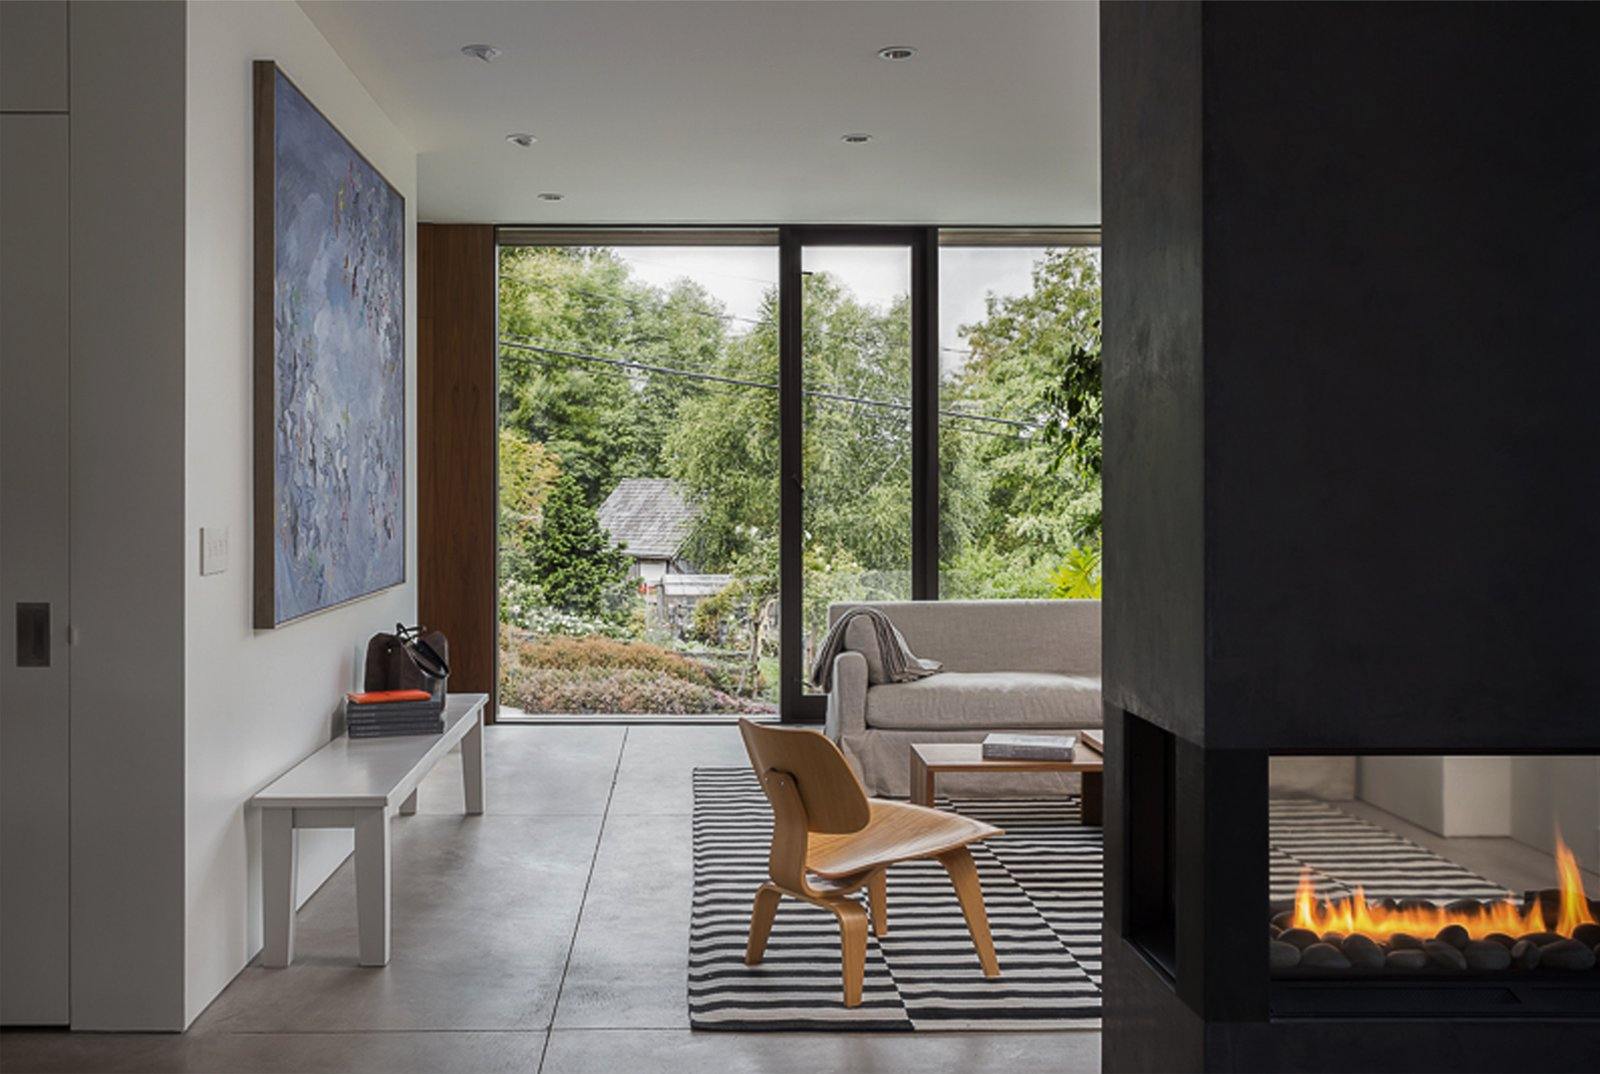 Helen Street by mw|works